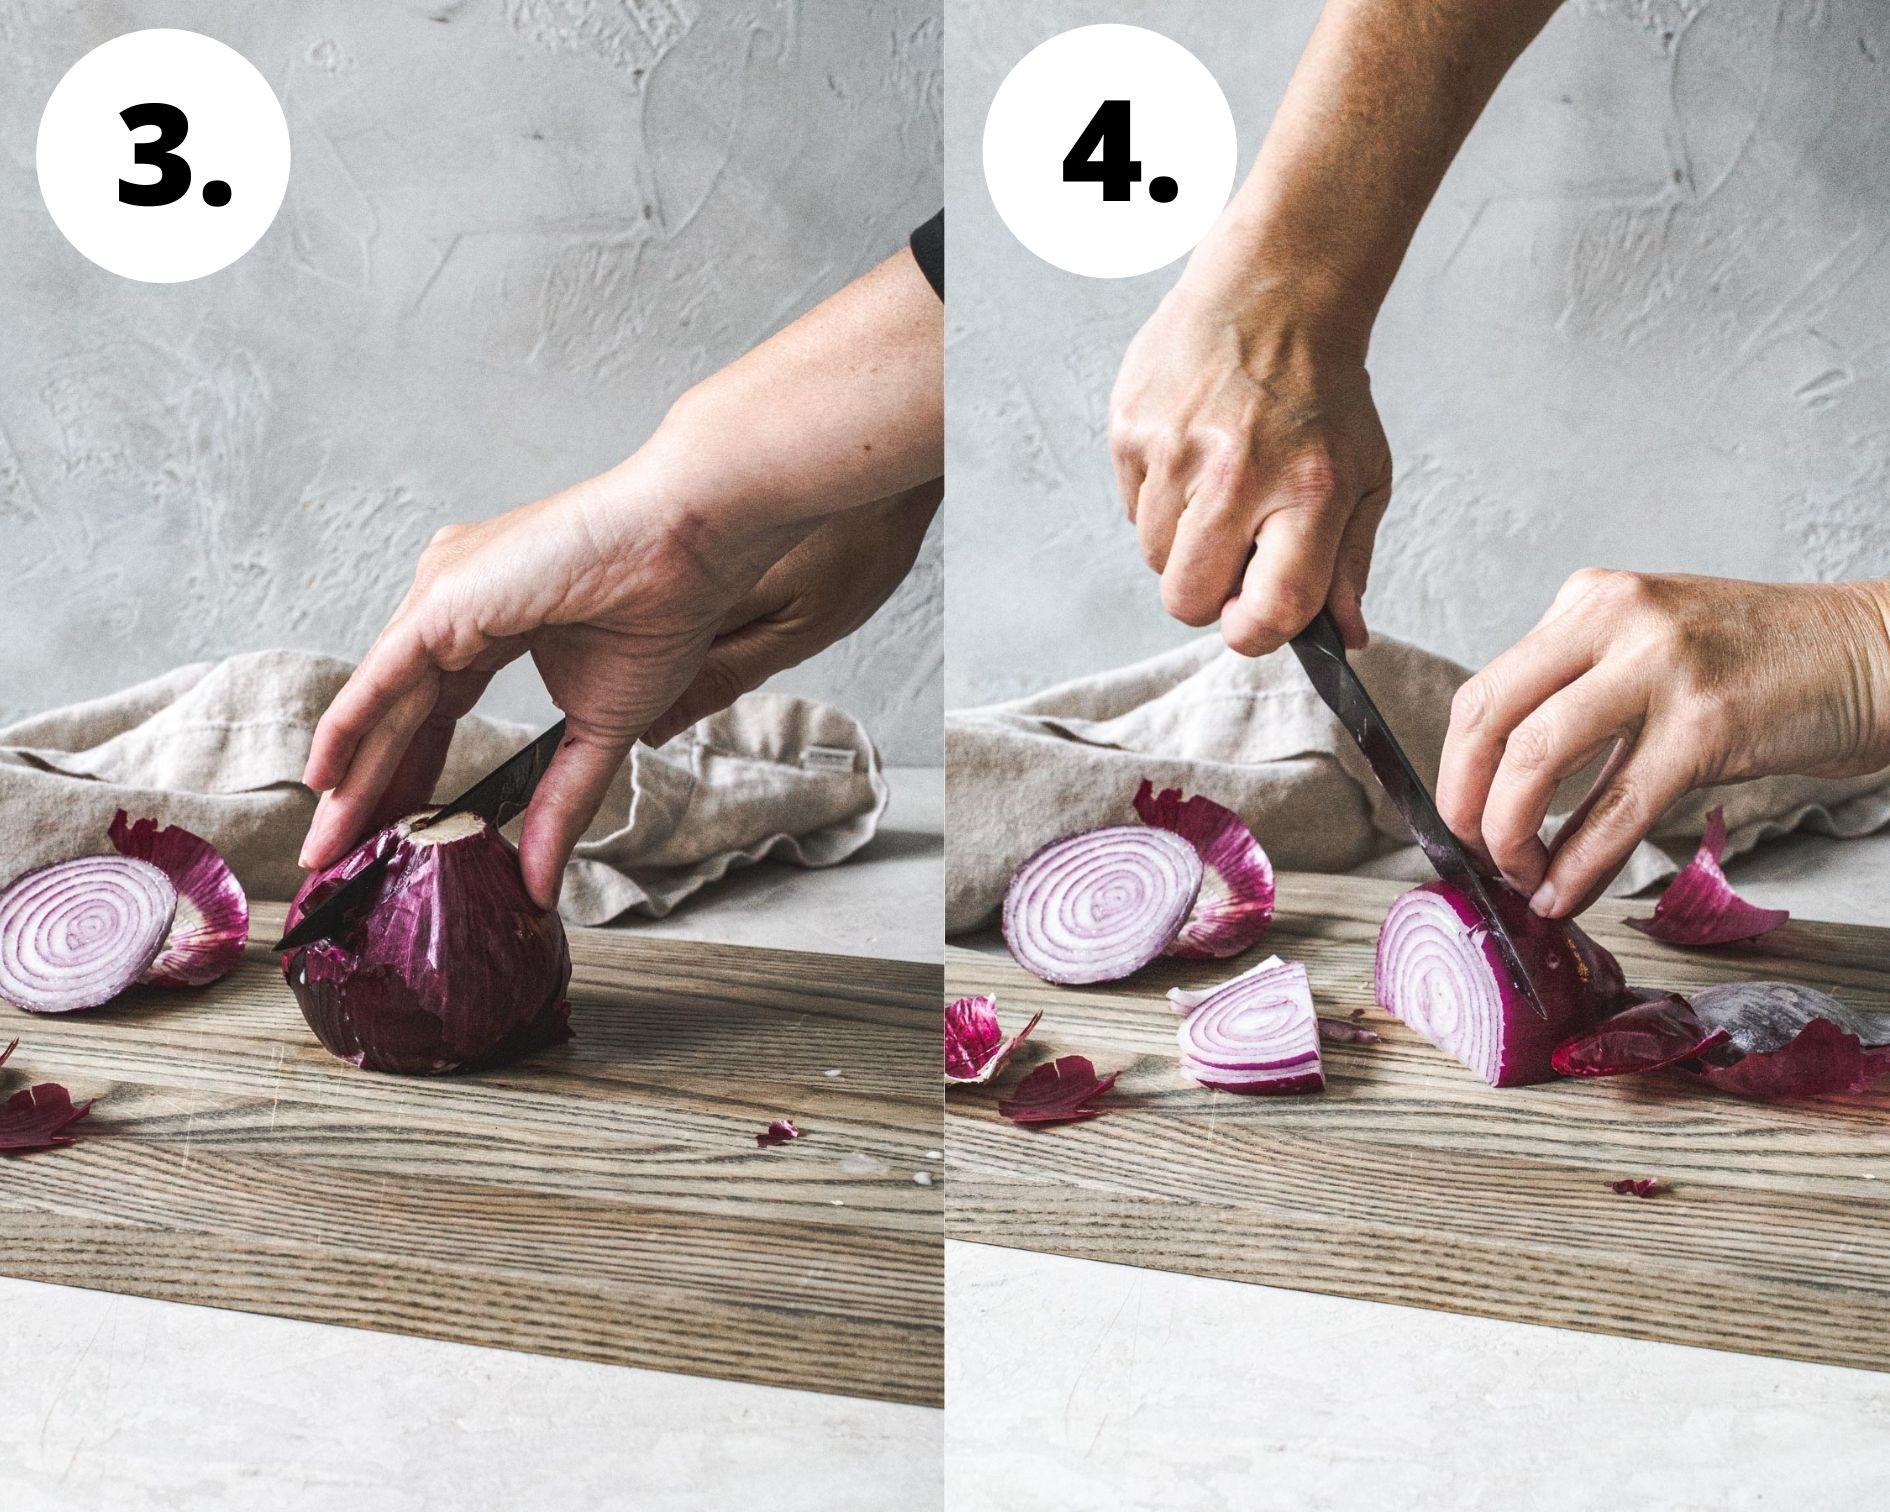 Process steps 3 and 4 for how to cut an onion crosswise.